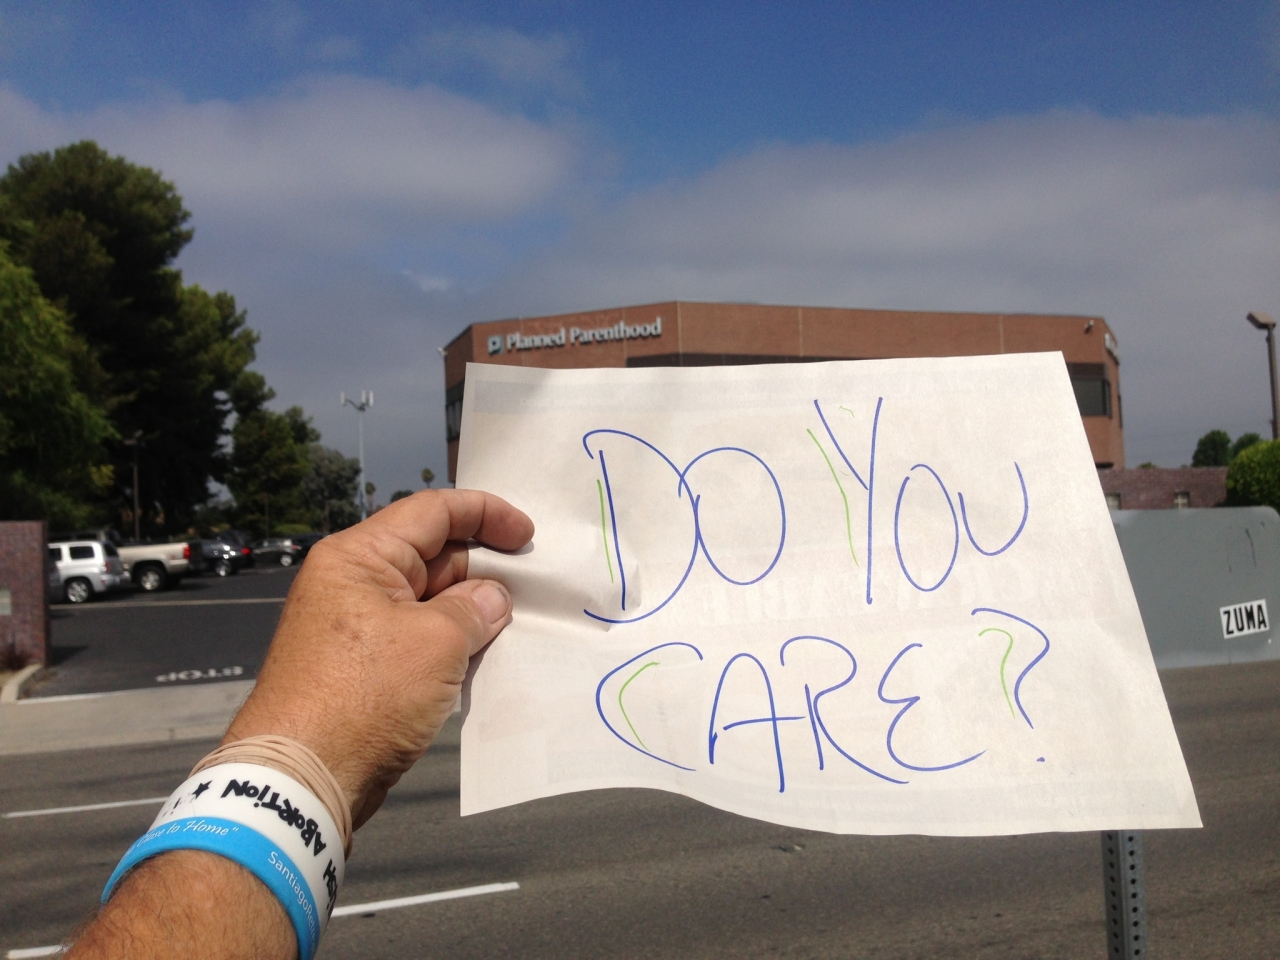 Len, Anaheim, CA: Does SoCal know its mothers go to #ABQ to get abortions up to birth?